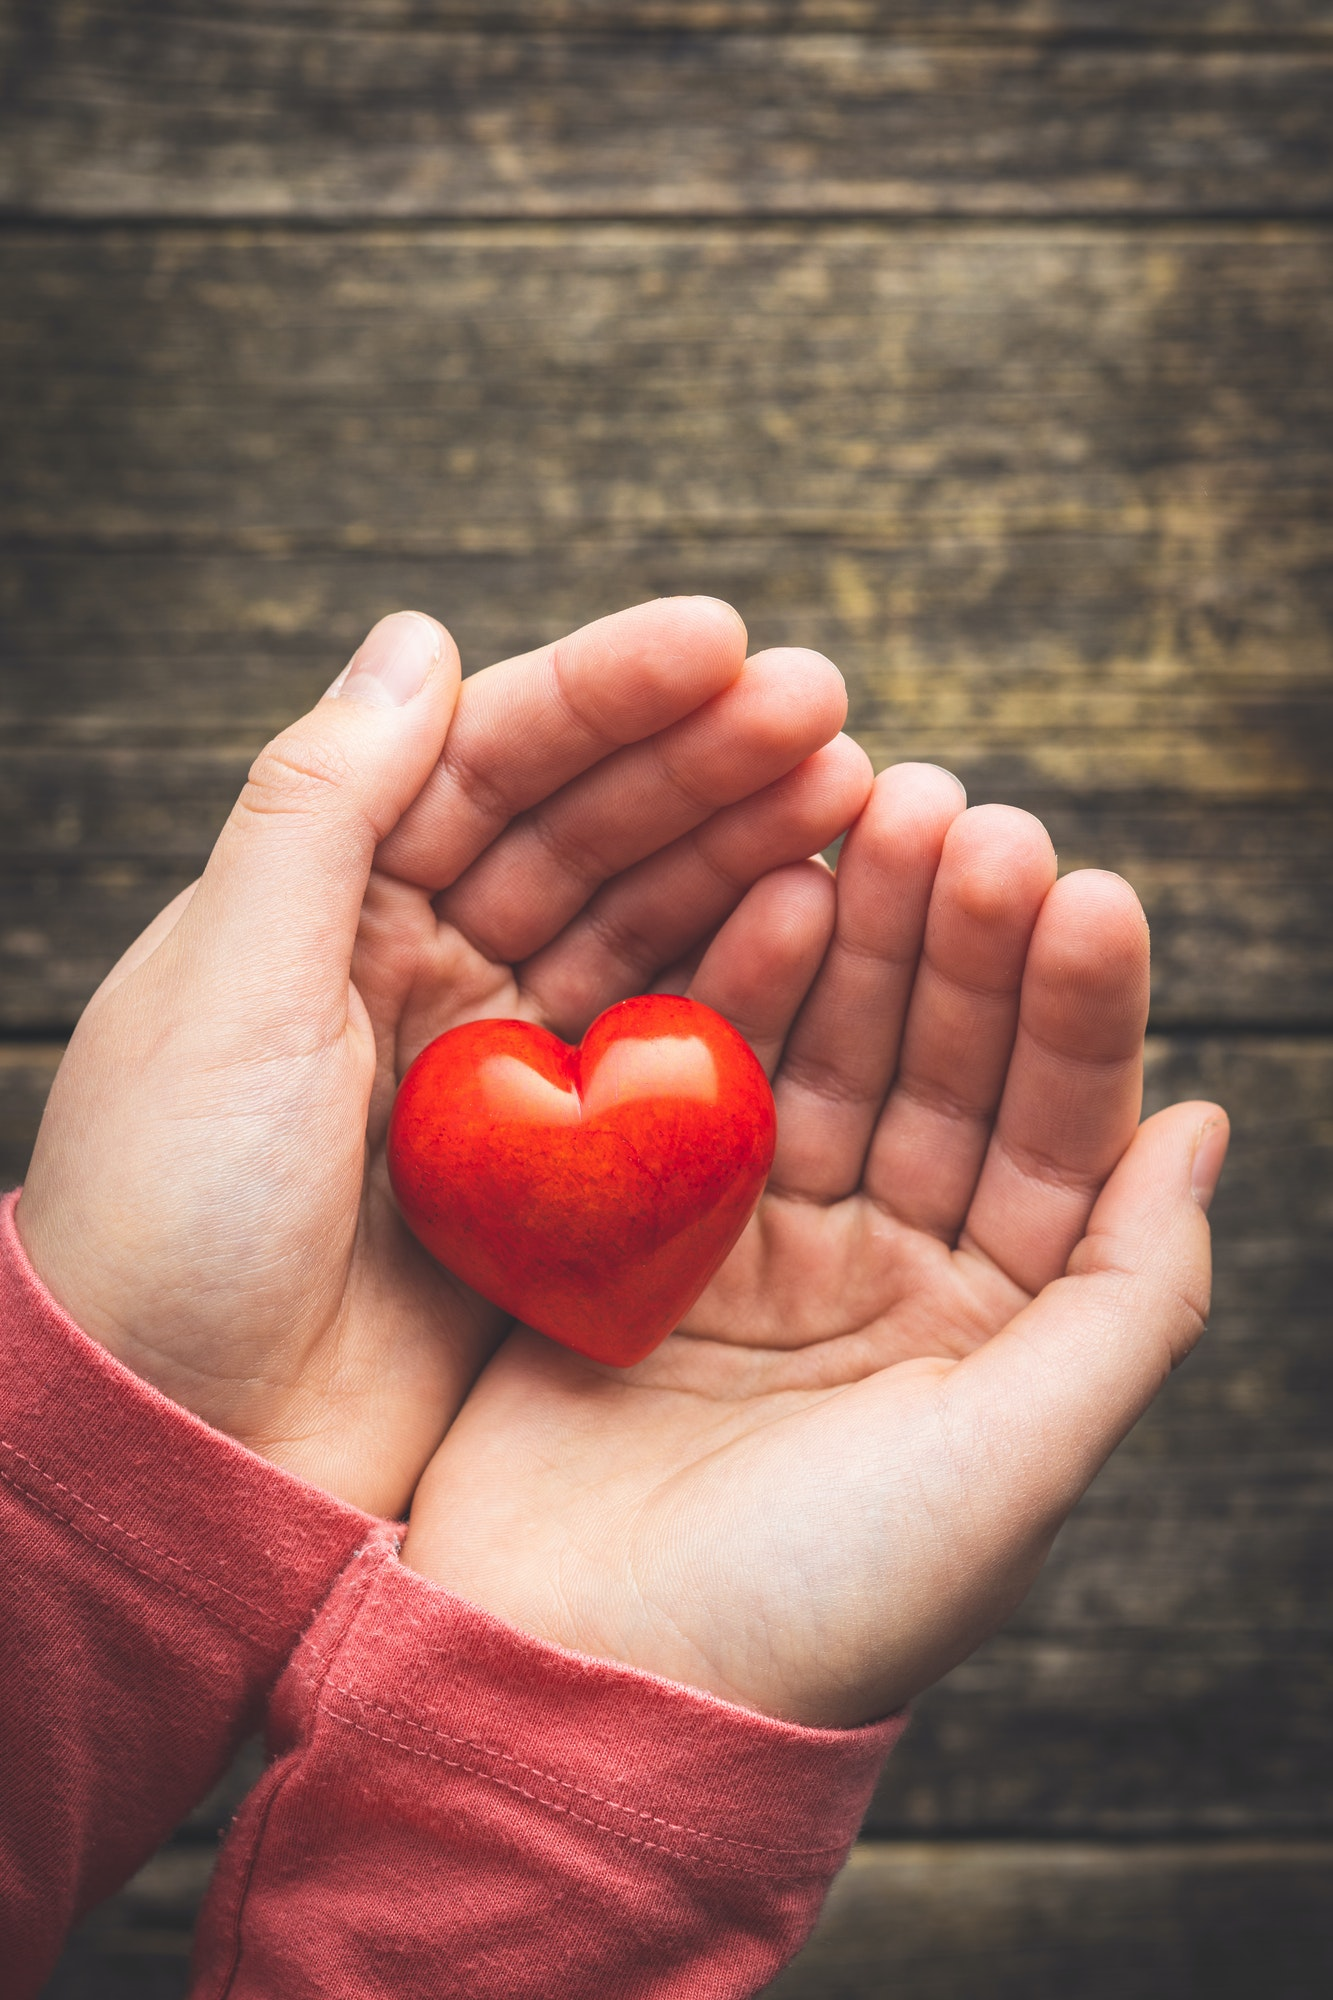 Child hold a red heart in their hands.